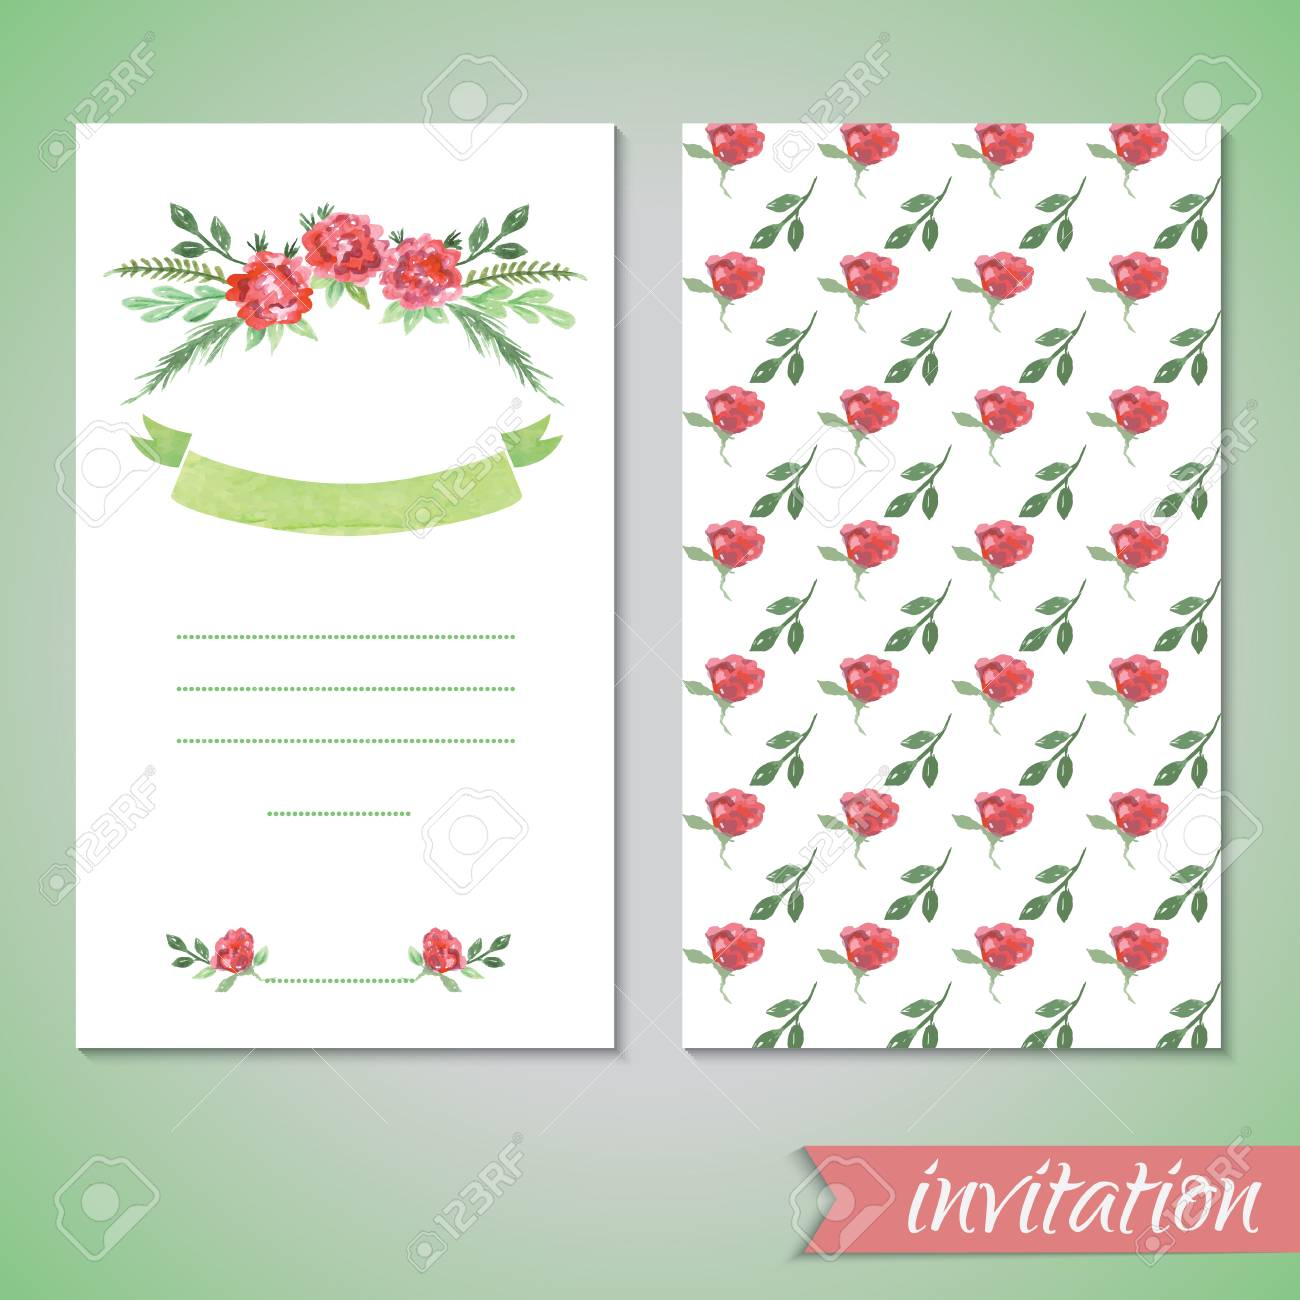 Watercolor Card Templates For Wedding Invitation, Save The Date ...